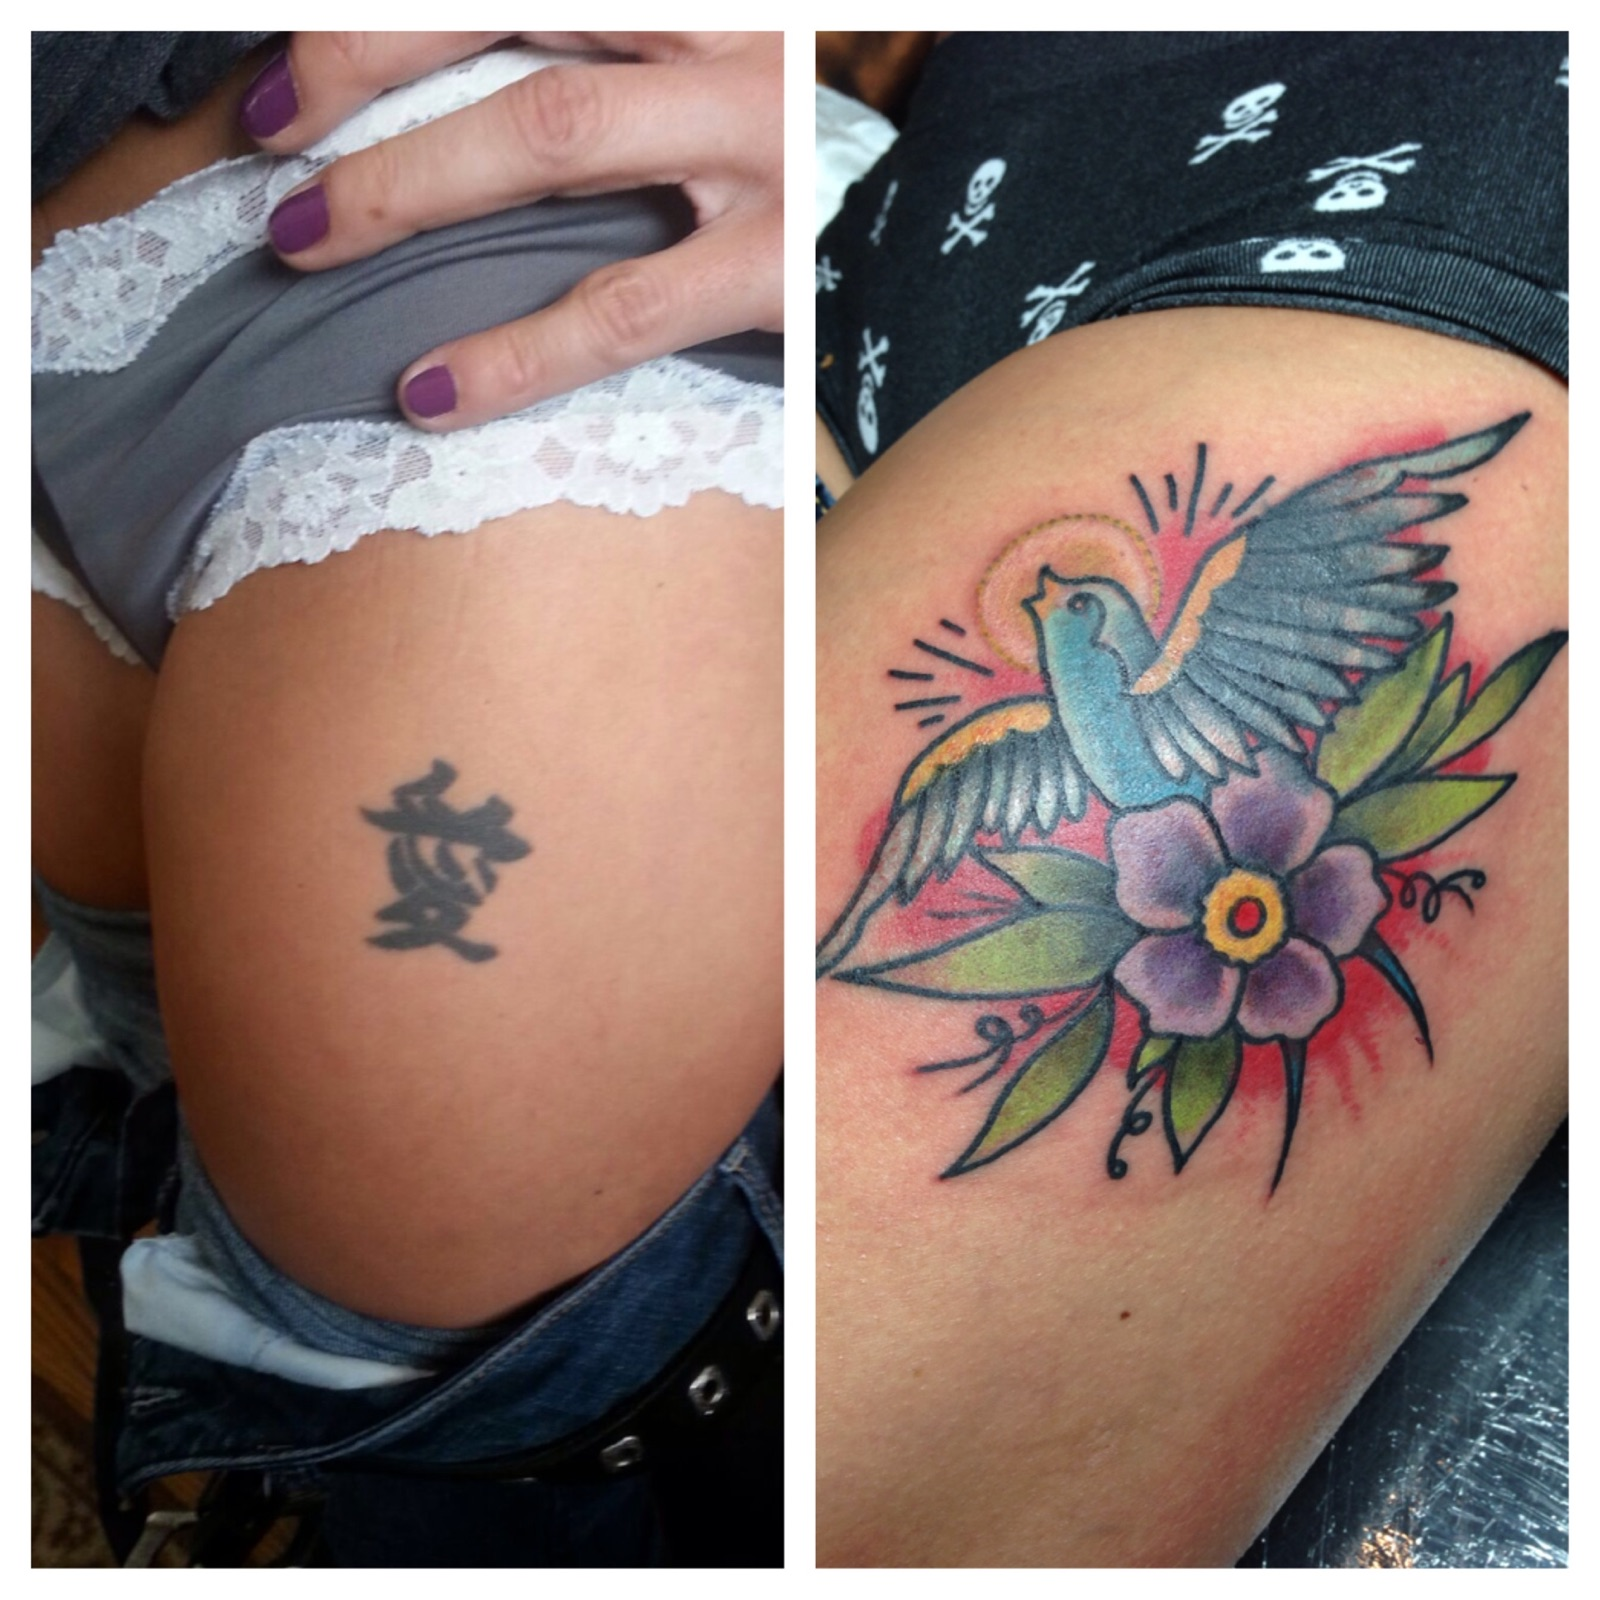 Cover up tattoos | Royal Flesh Tattoo And Piercing-Chicago Tattoo ...